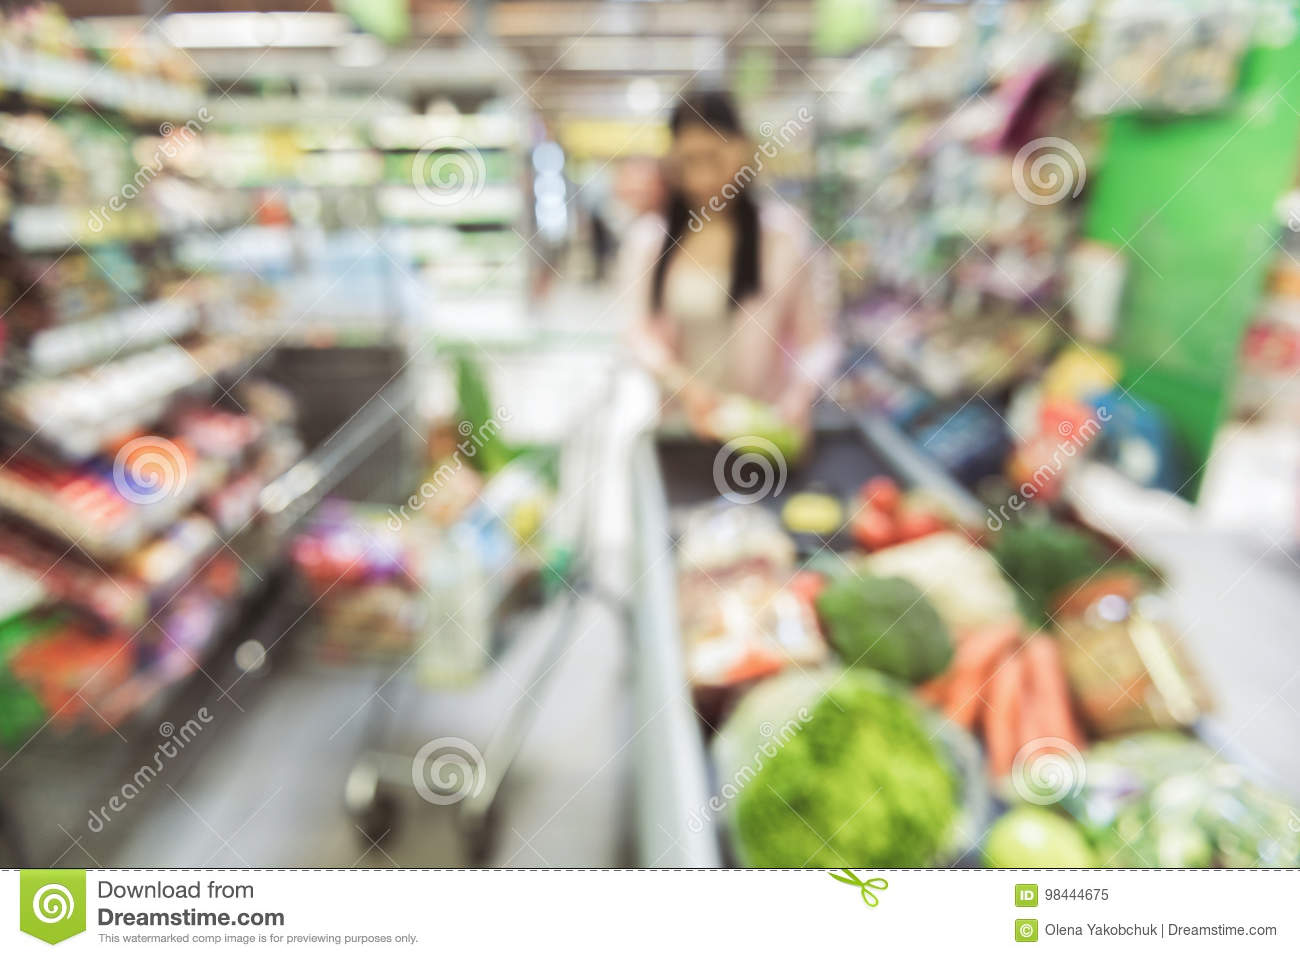 Woman going to pay for chosen goods